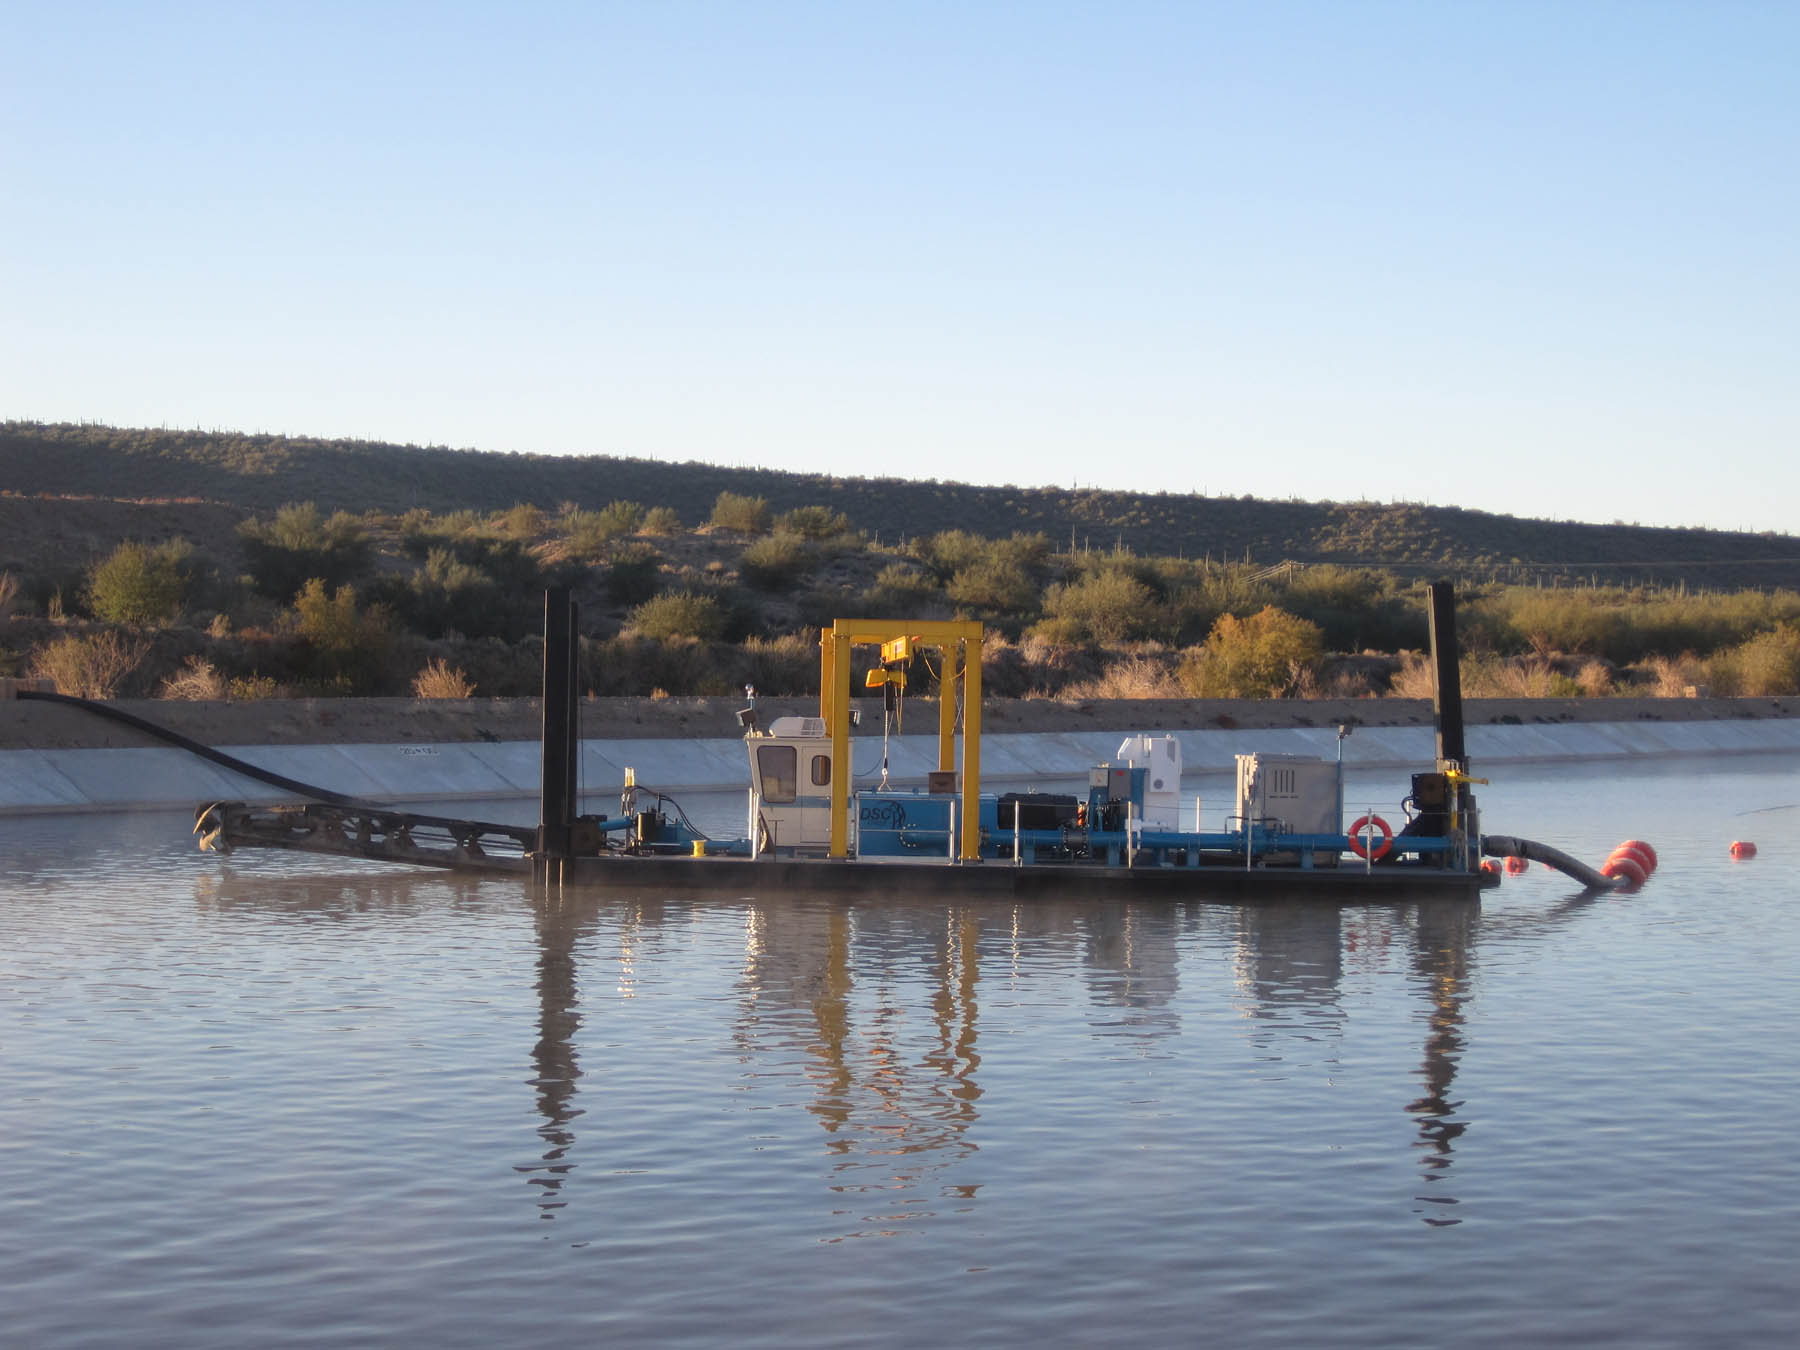 A DSC Barracuda Class electric-powered dredge is used to remove sediment in a settling basin for the Gila River in Arizona, an important source of irrigation water for the community.